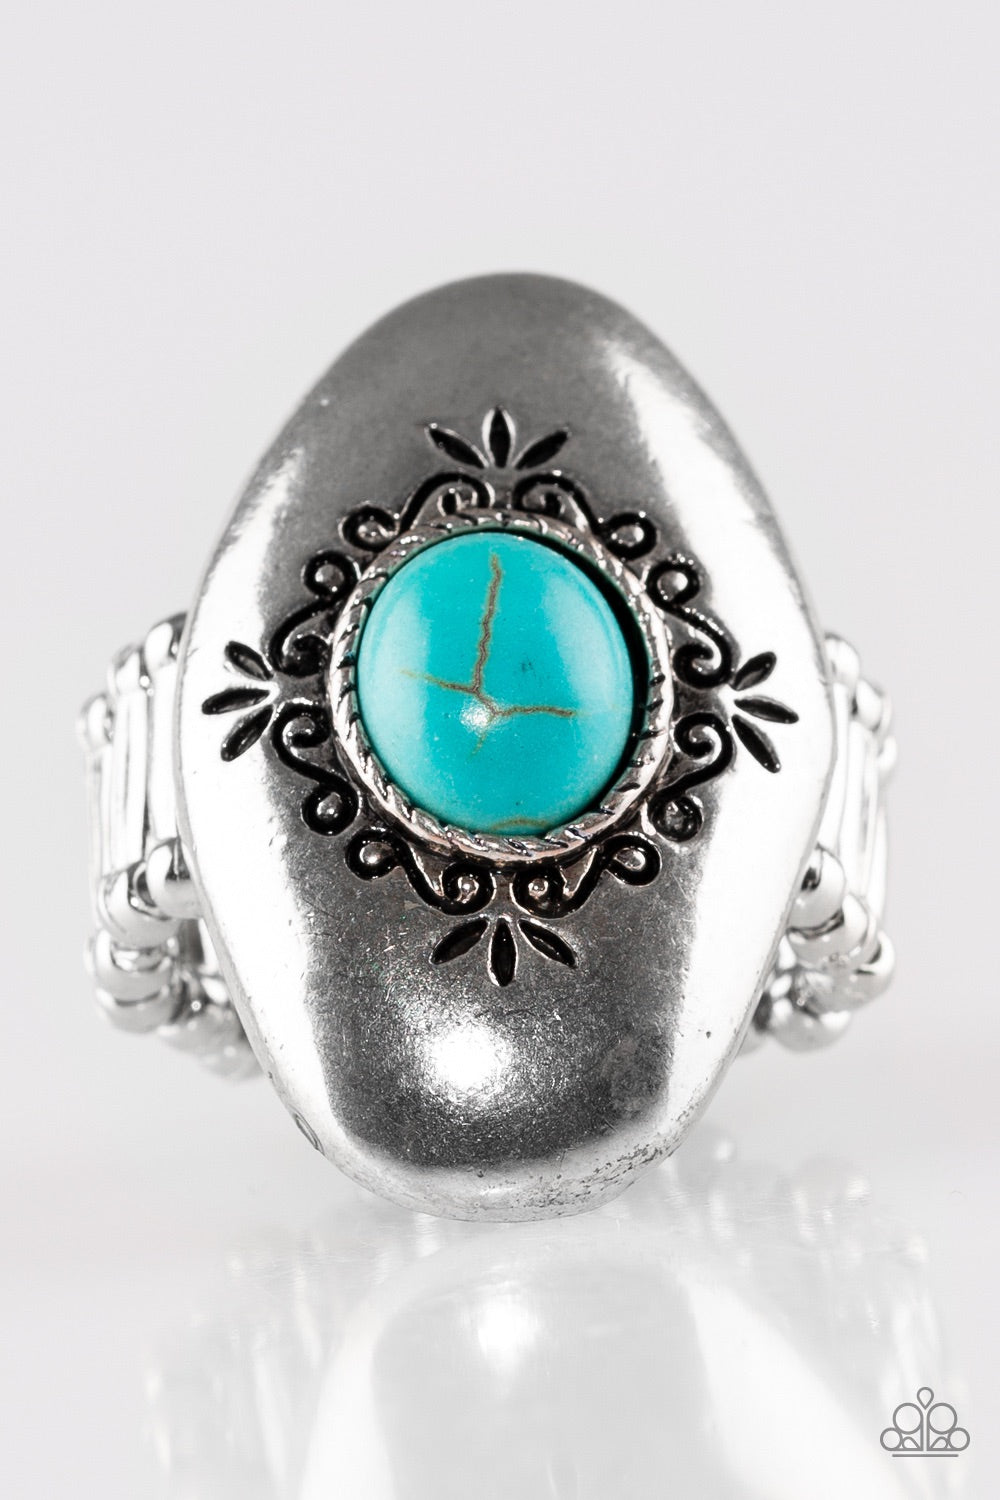 Stone Gardens Blue Turquoise Silver Ring - Paparazzi Accessories - JewelTonez Jewelry